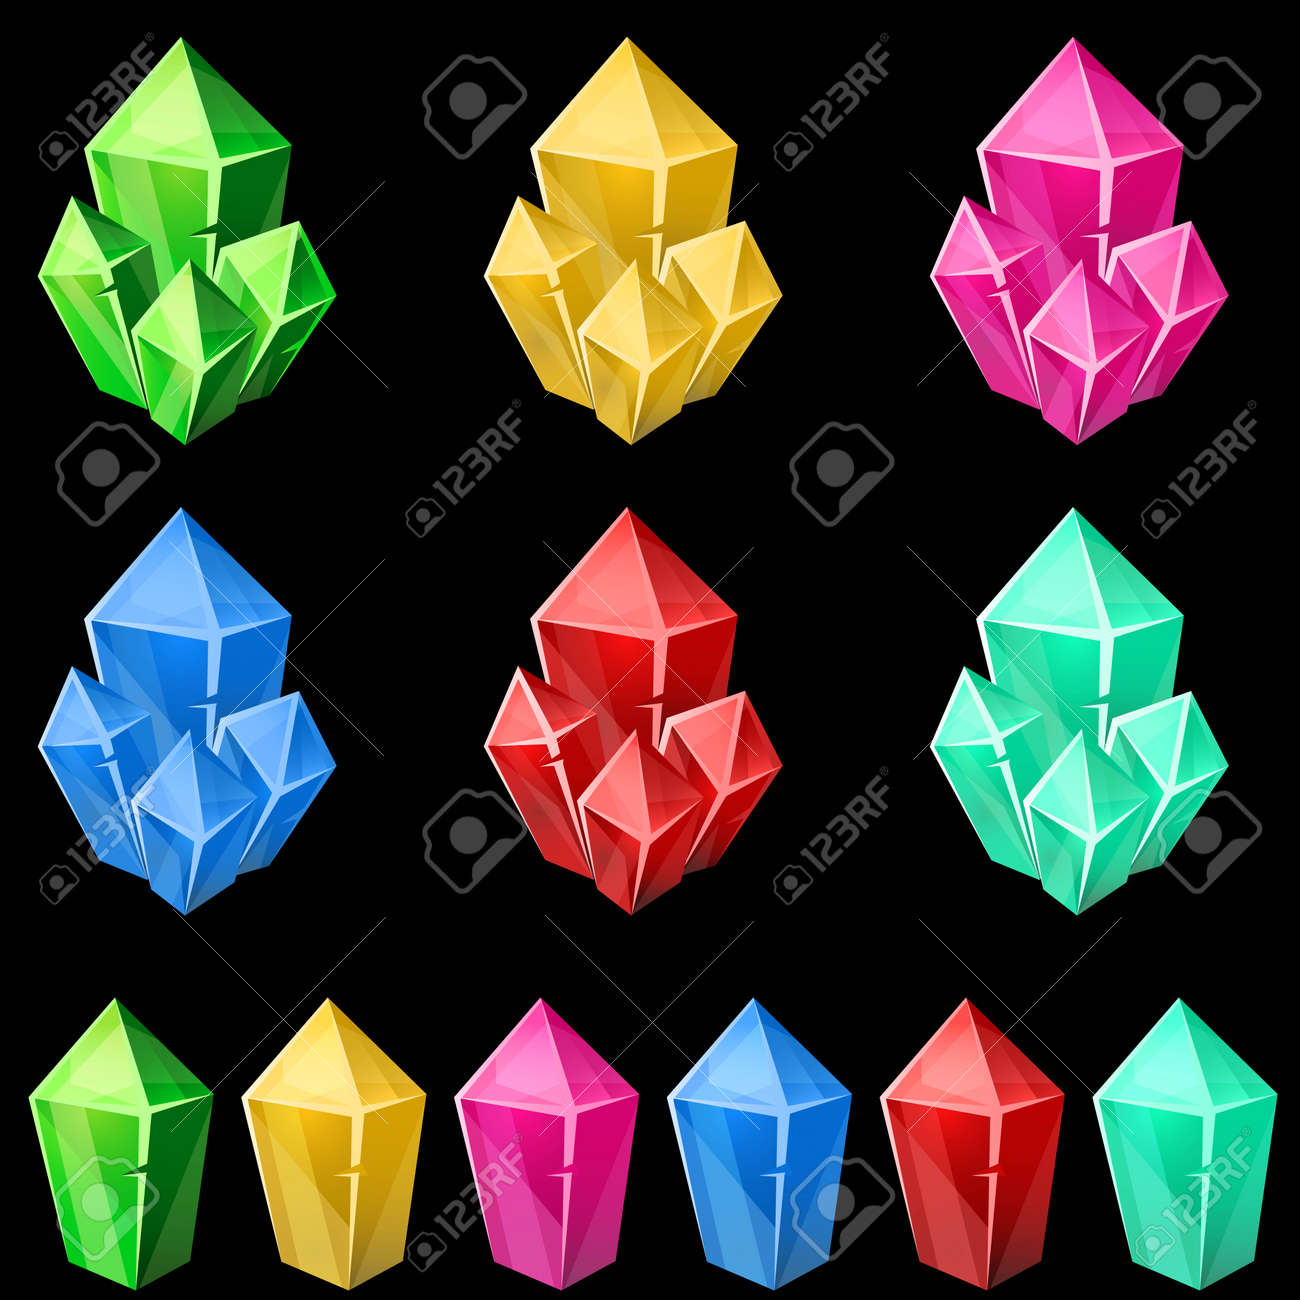 Set of colorful crystals  2d gem asset for games collection